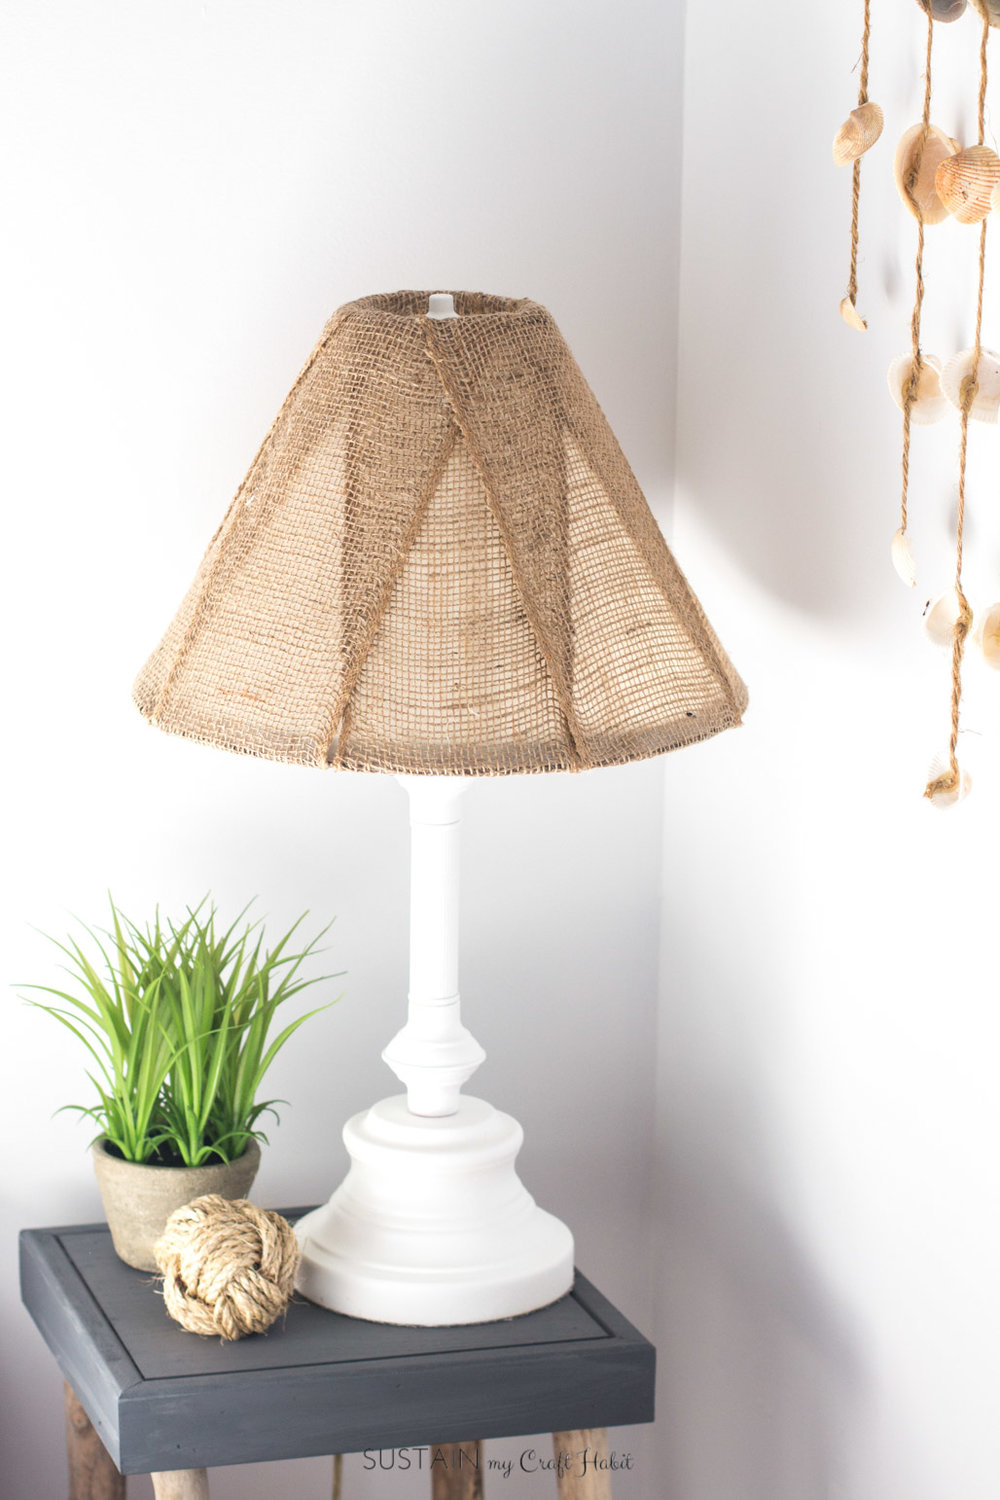 Upcycled Table Lamp with Burlap Shade